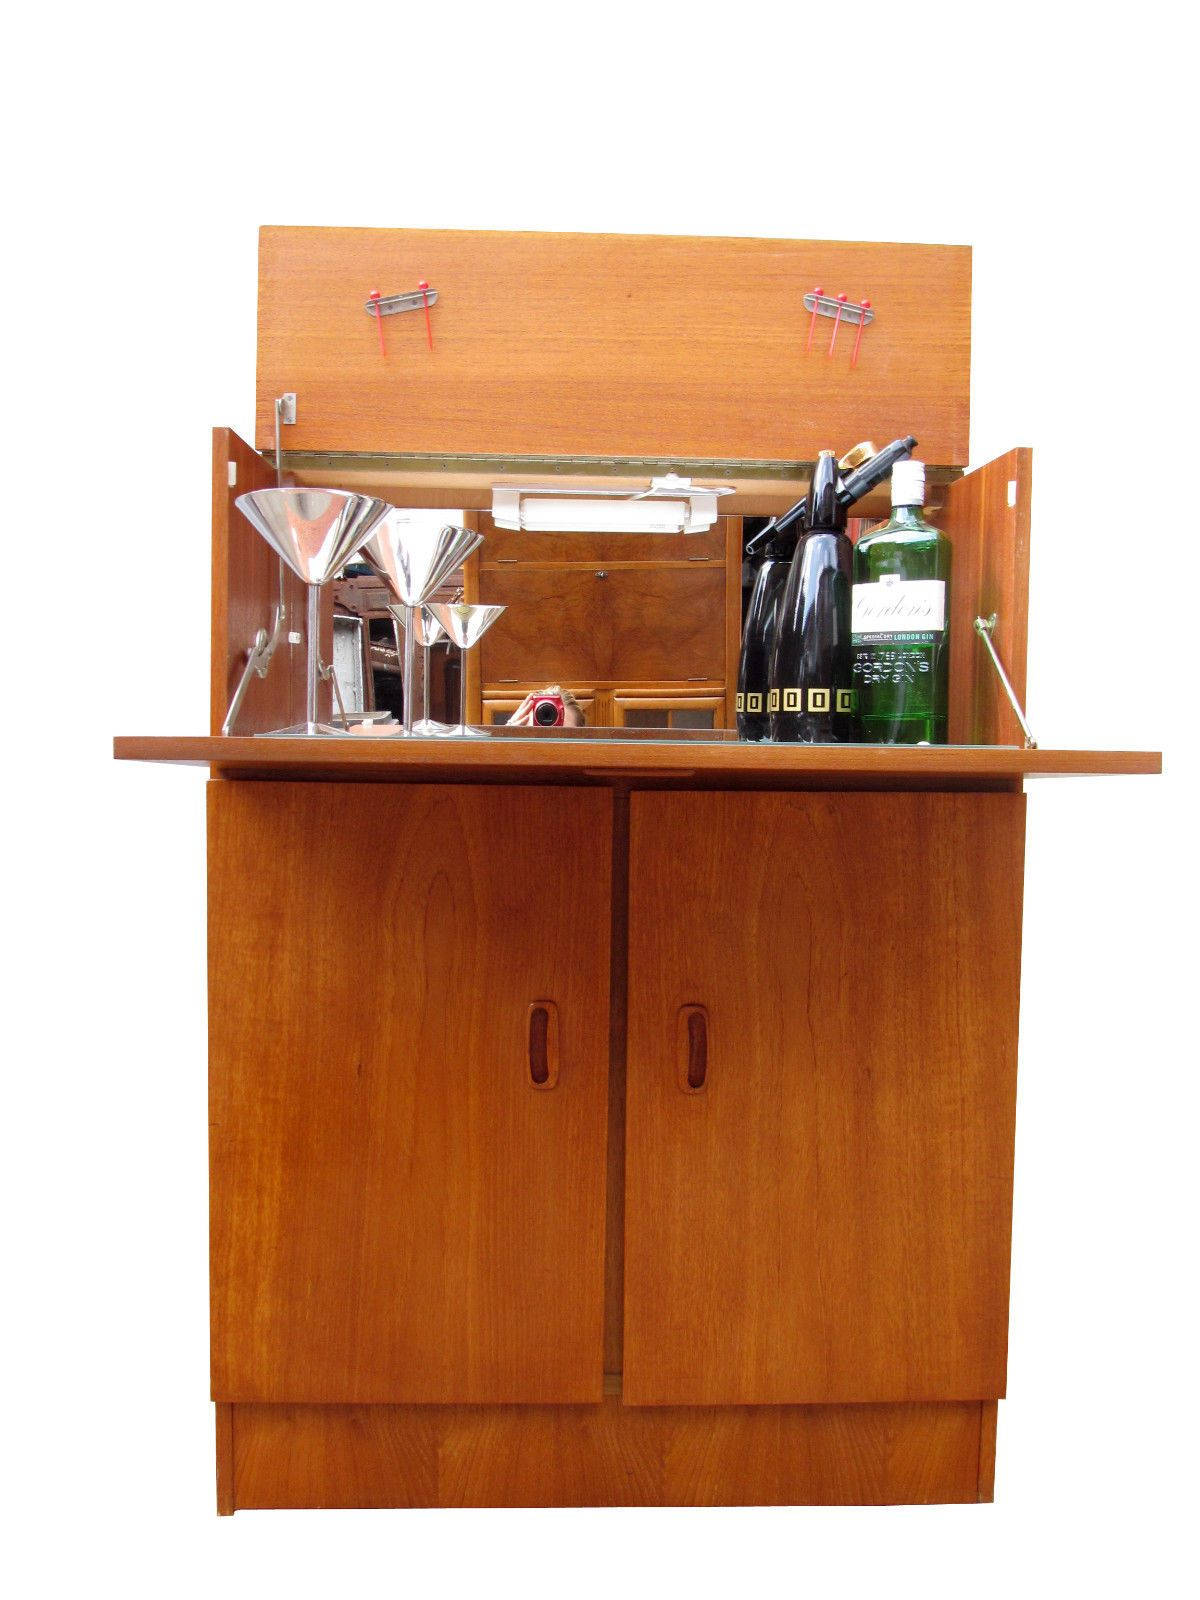 Wonderful Teak Mid Century Danish Modern 1960s Vintage Drinks Bar Cocktail Cabinet |  EBay